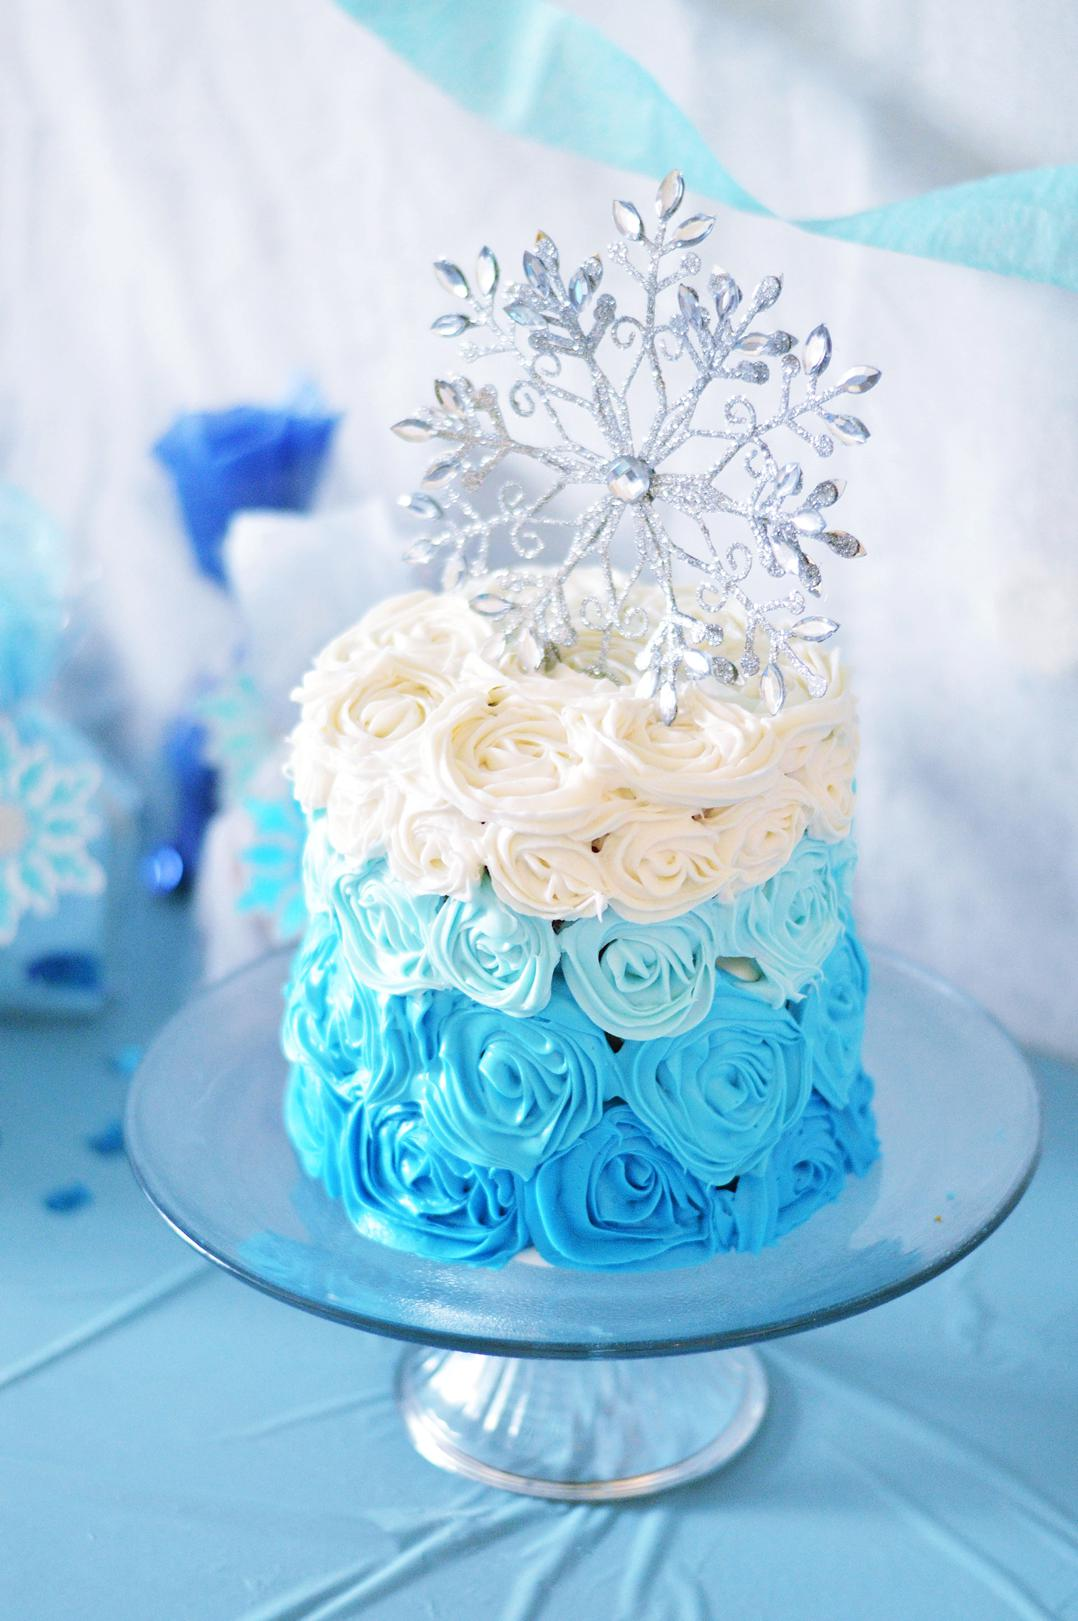 DIY Frozen Party Easy Beautiful Frozen Cake Frozen Party